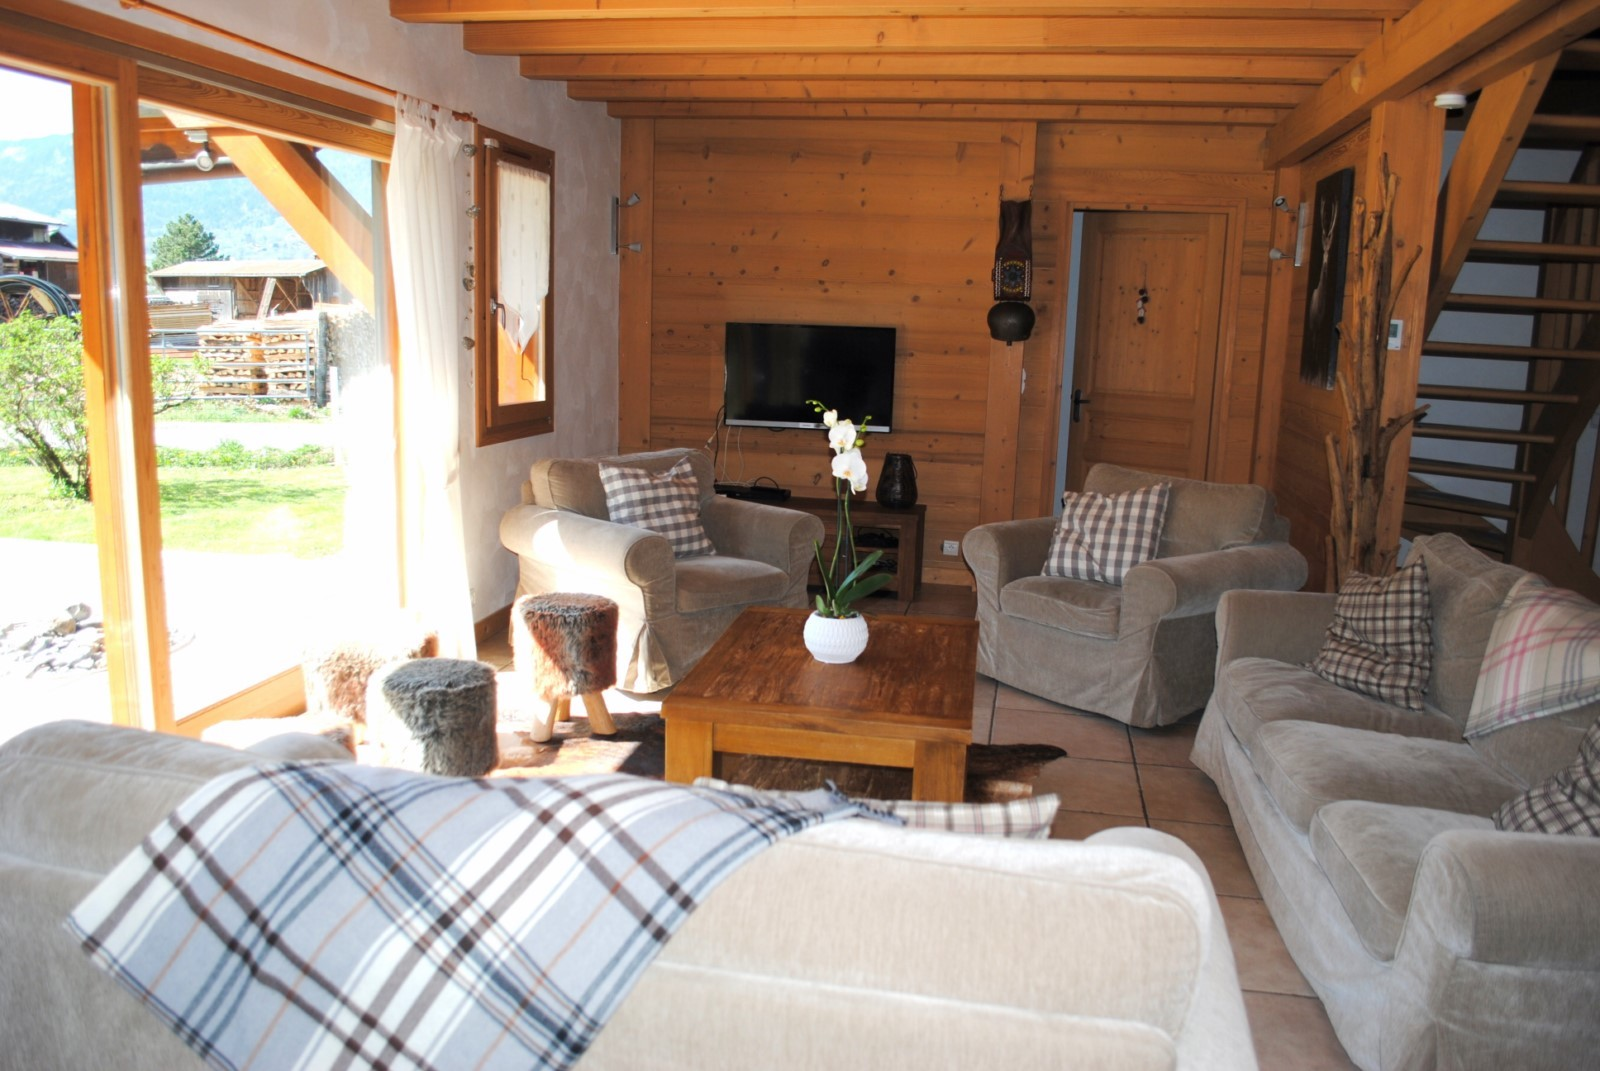 Vente chalet orchid e agence immobili re samoens for Agence immobiliere 74